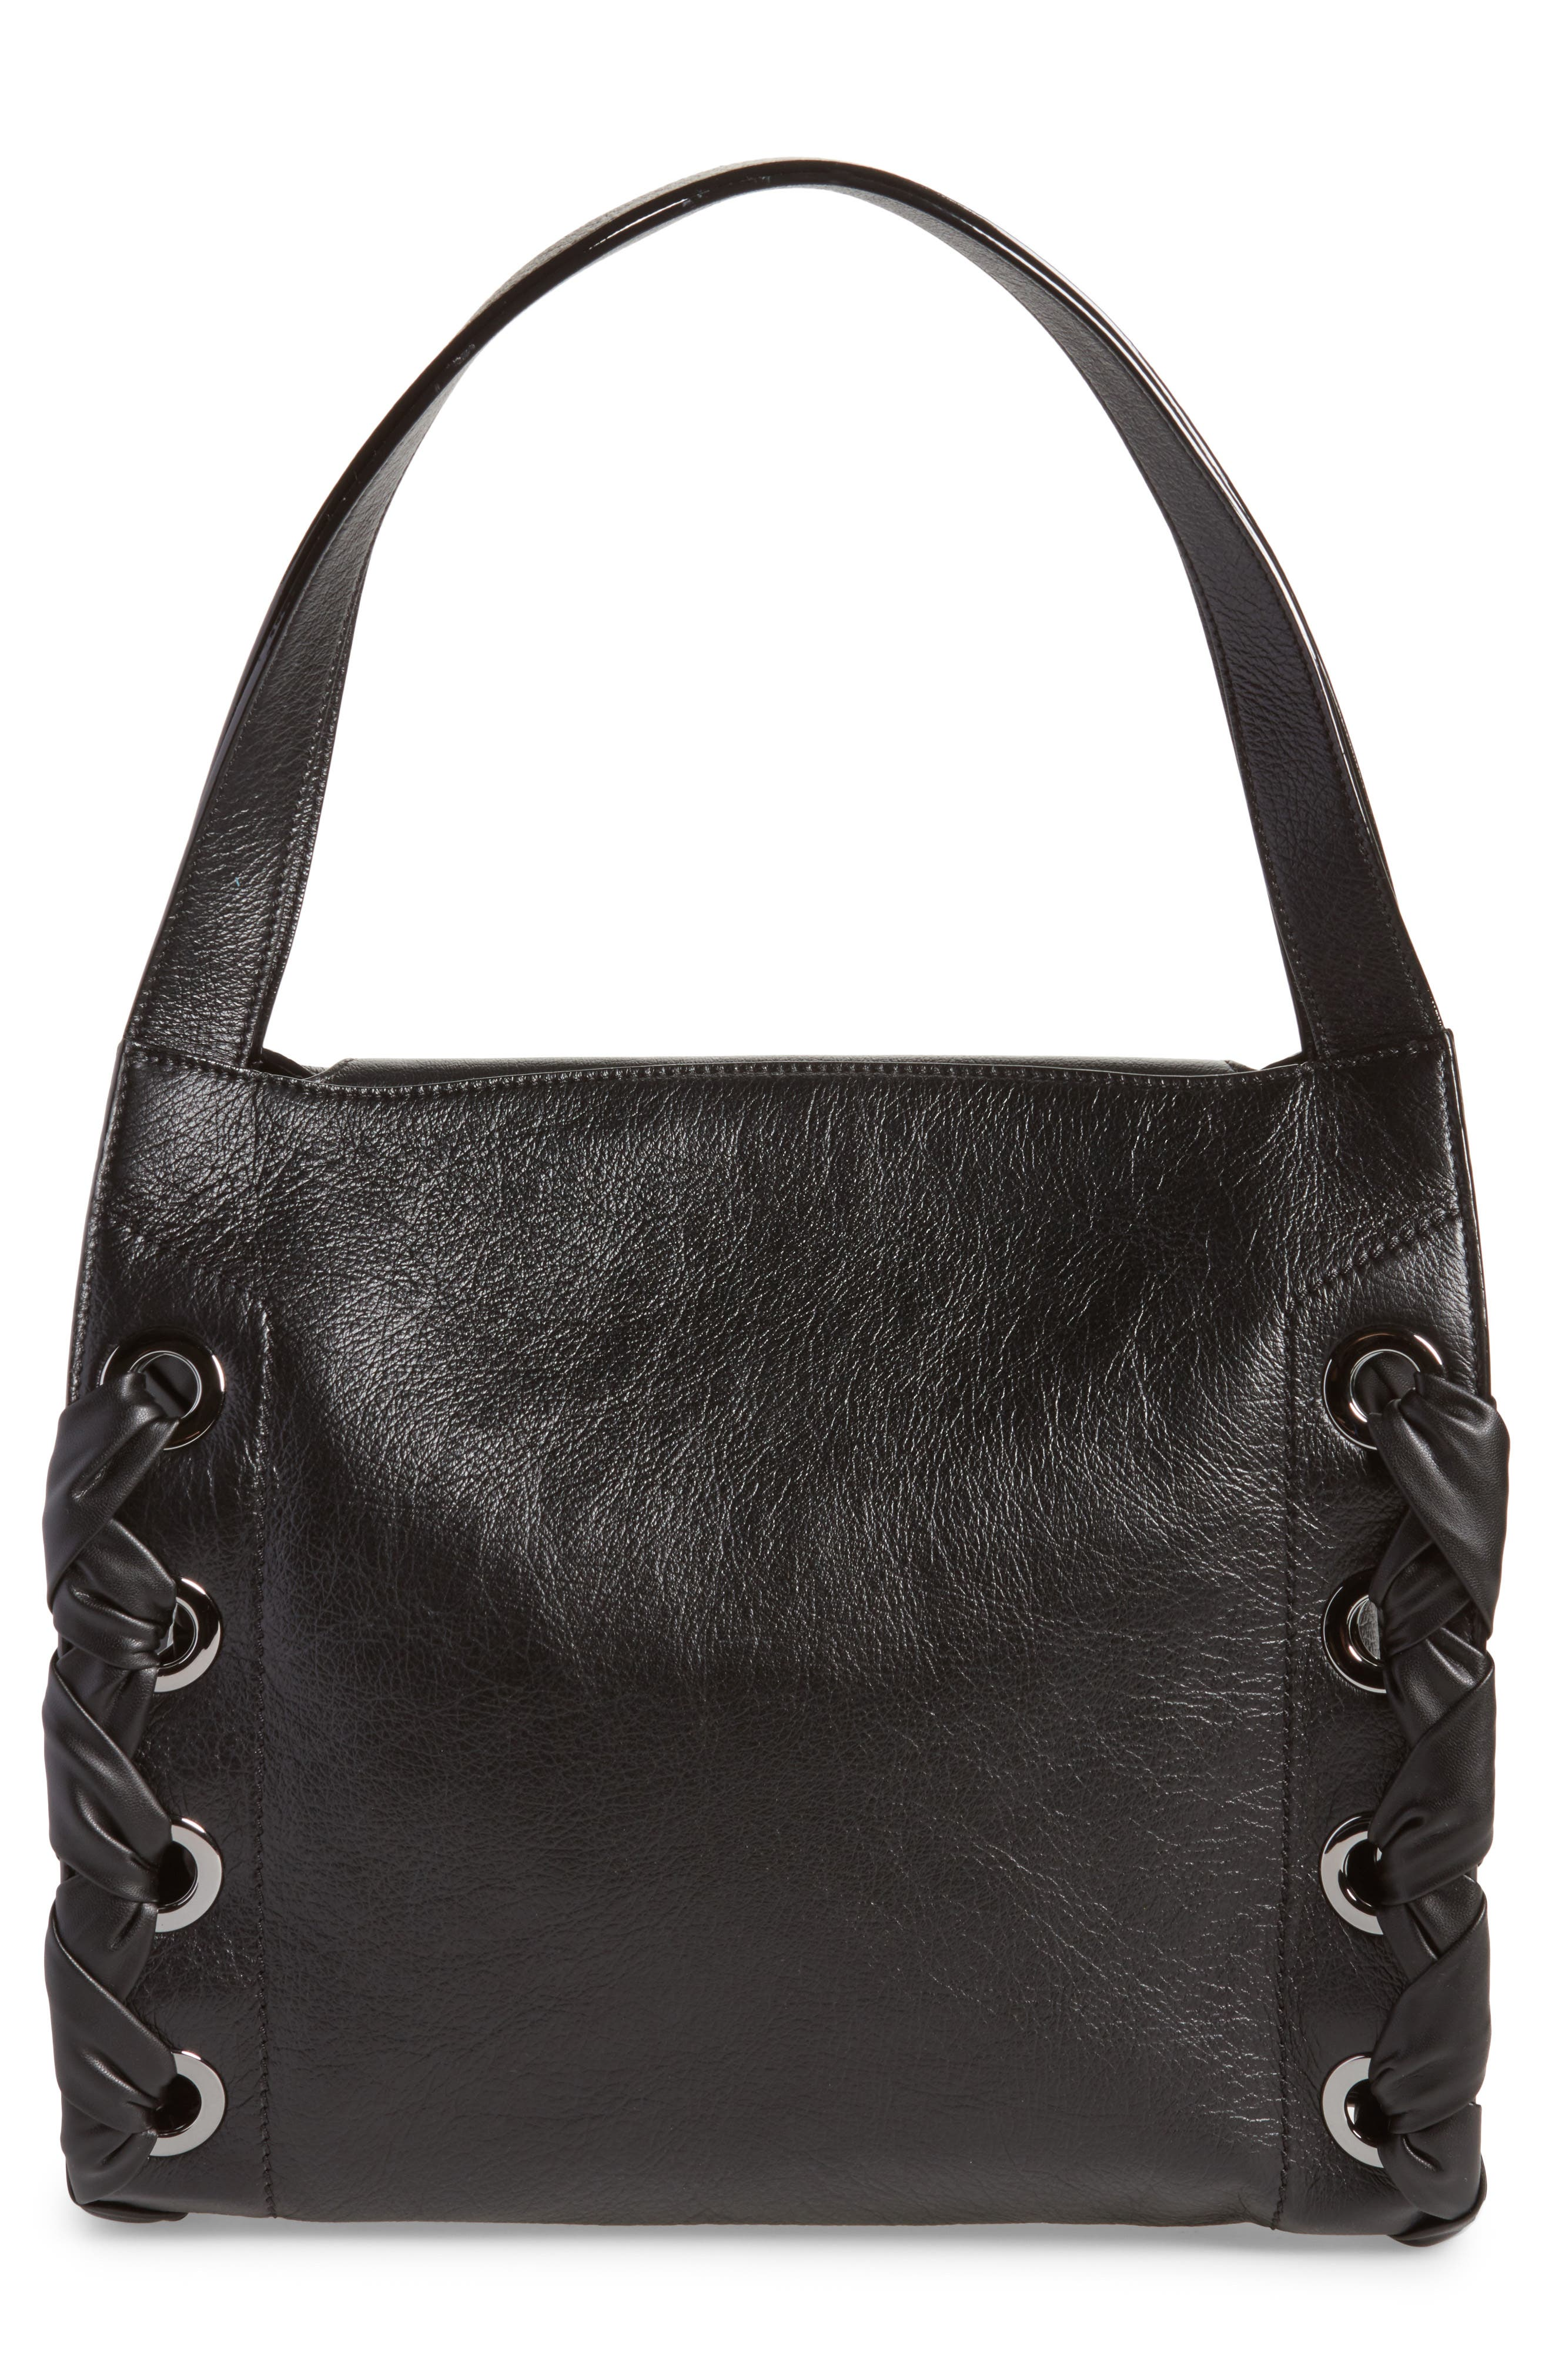 Rebel Leather Shoulder Bag,                             Alternate thumbnail 3, color,                             Black